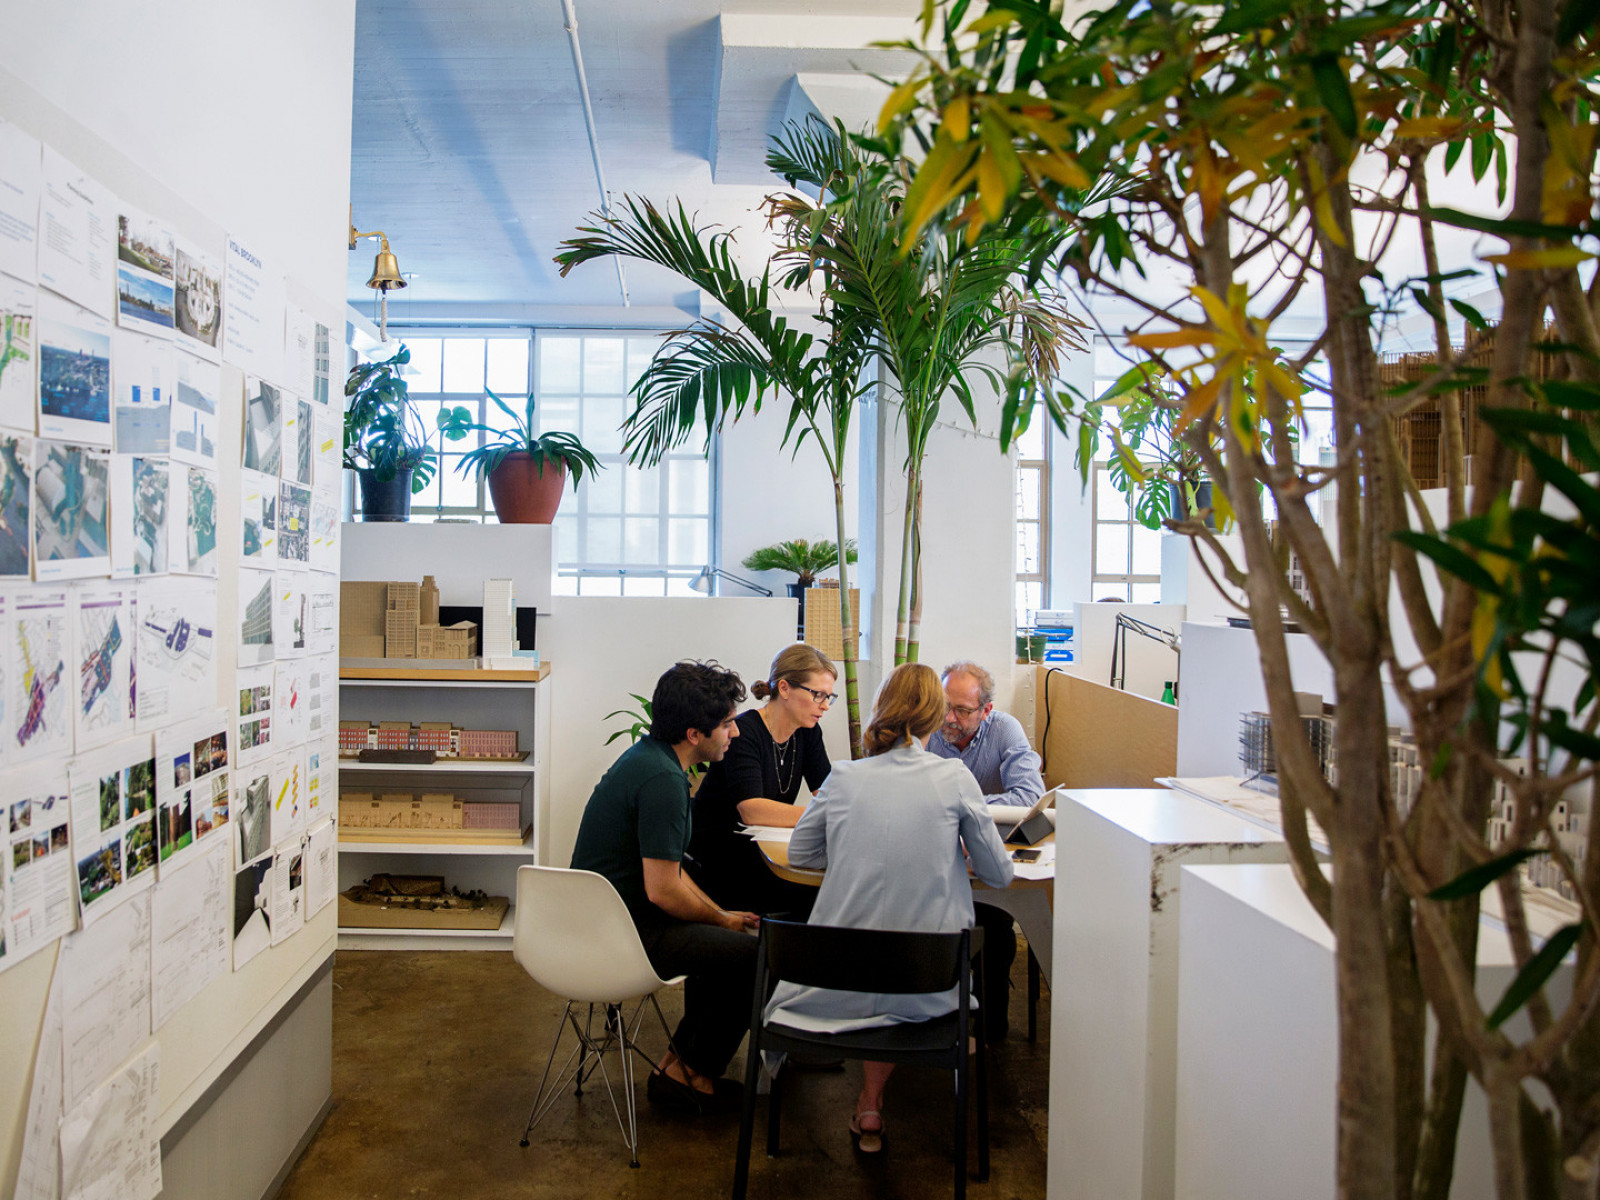 Marvel Architects is a solutions-driven design practice, Marvel Architects integrates context and nature into every project. Marvel architects meets each design challenge by listening to its surroundings.